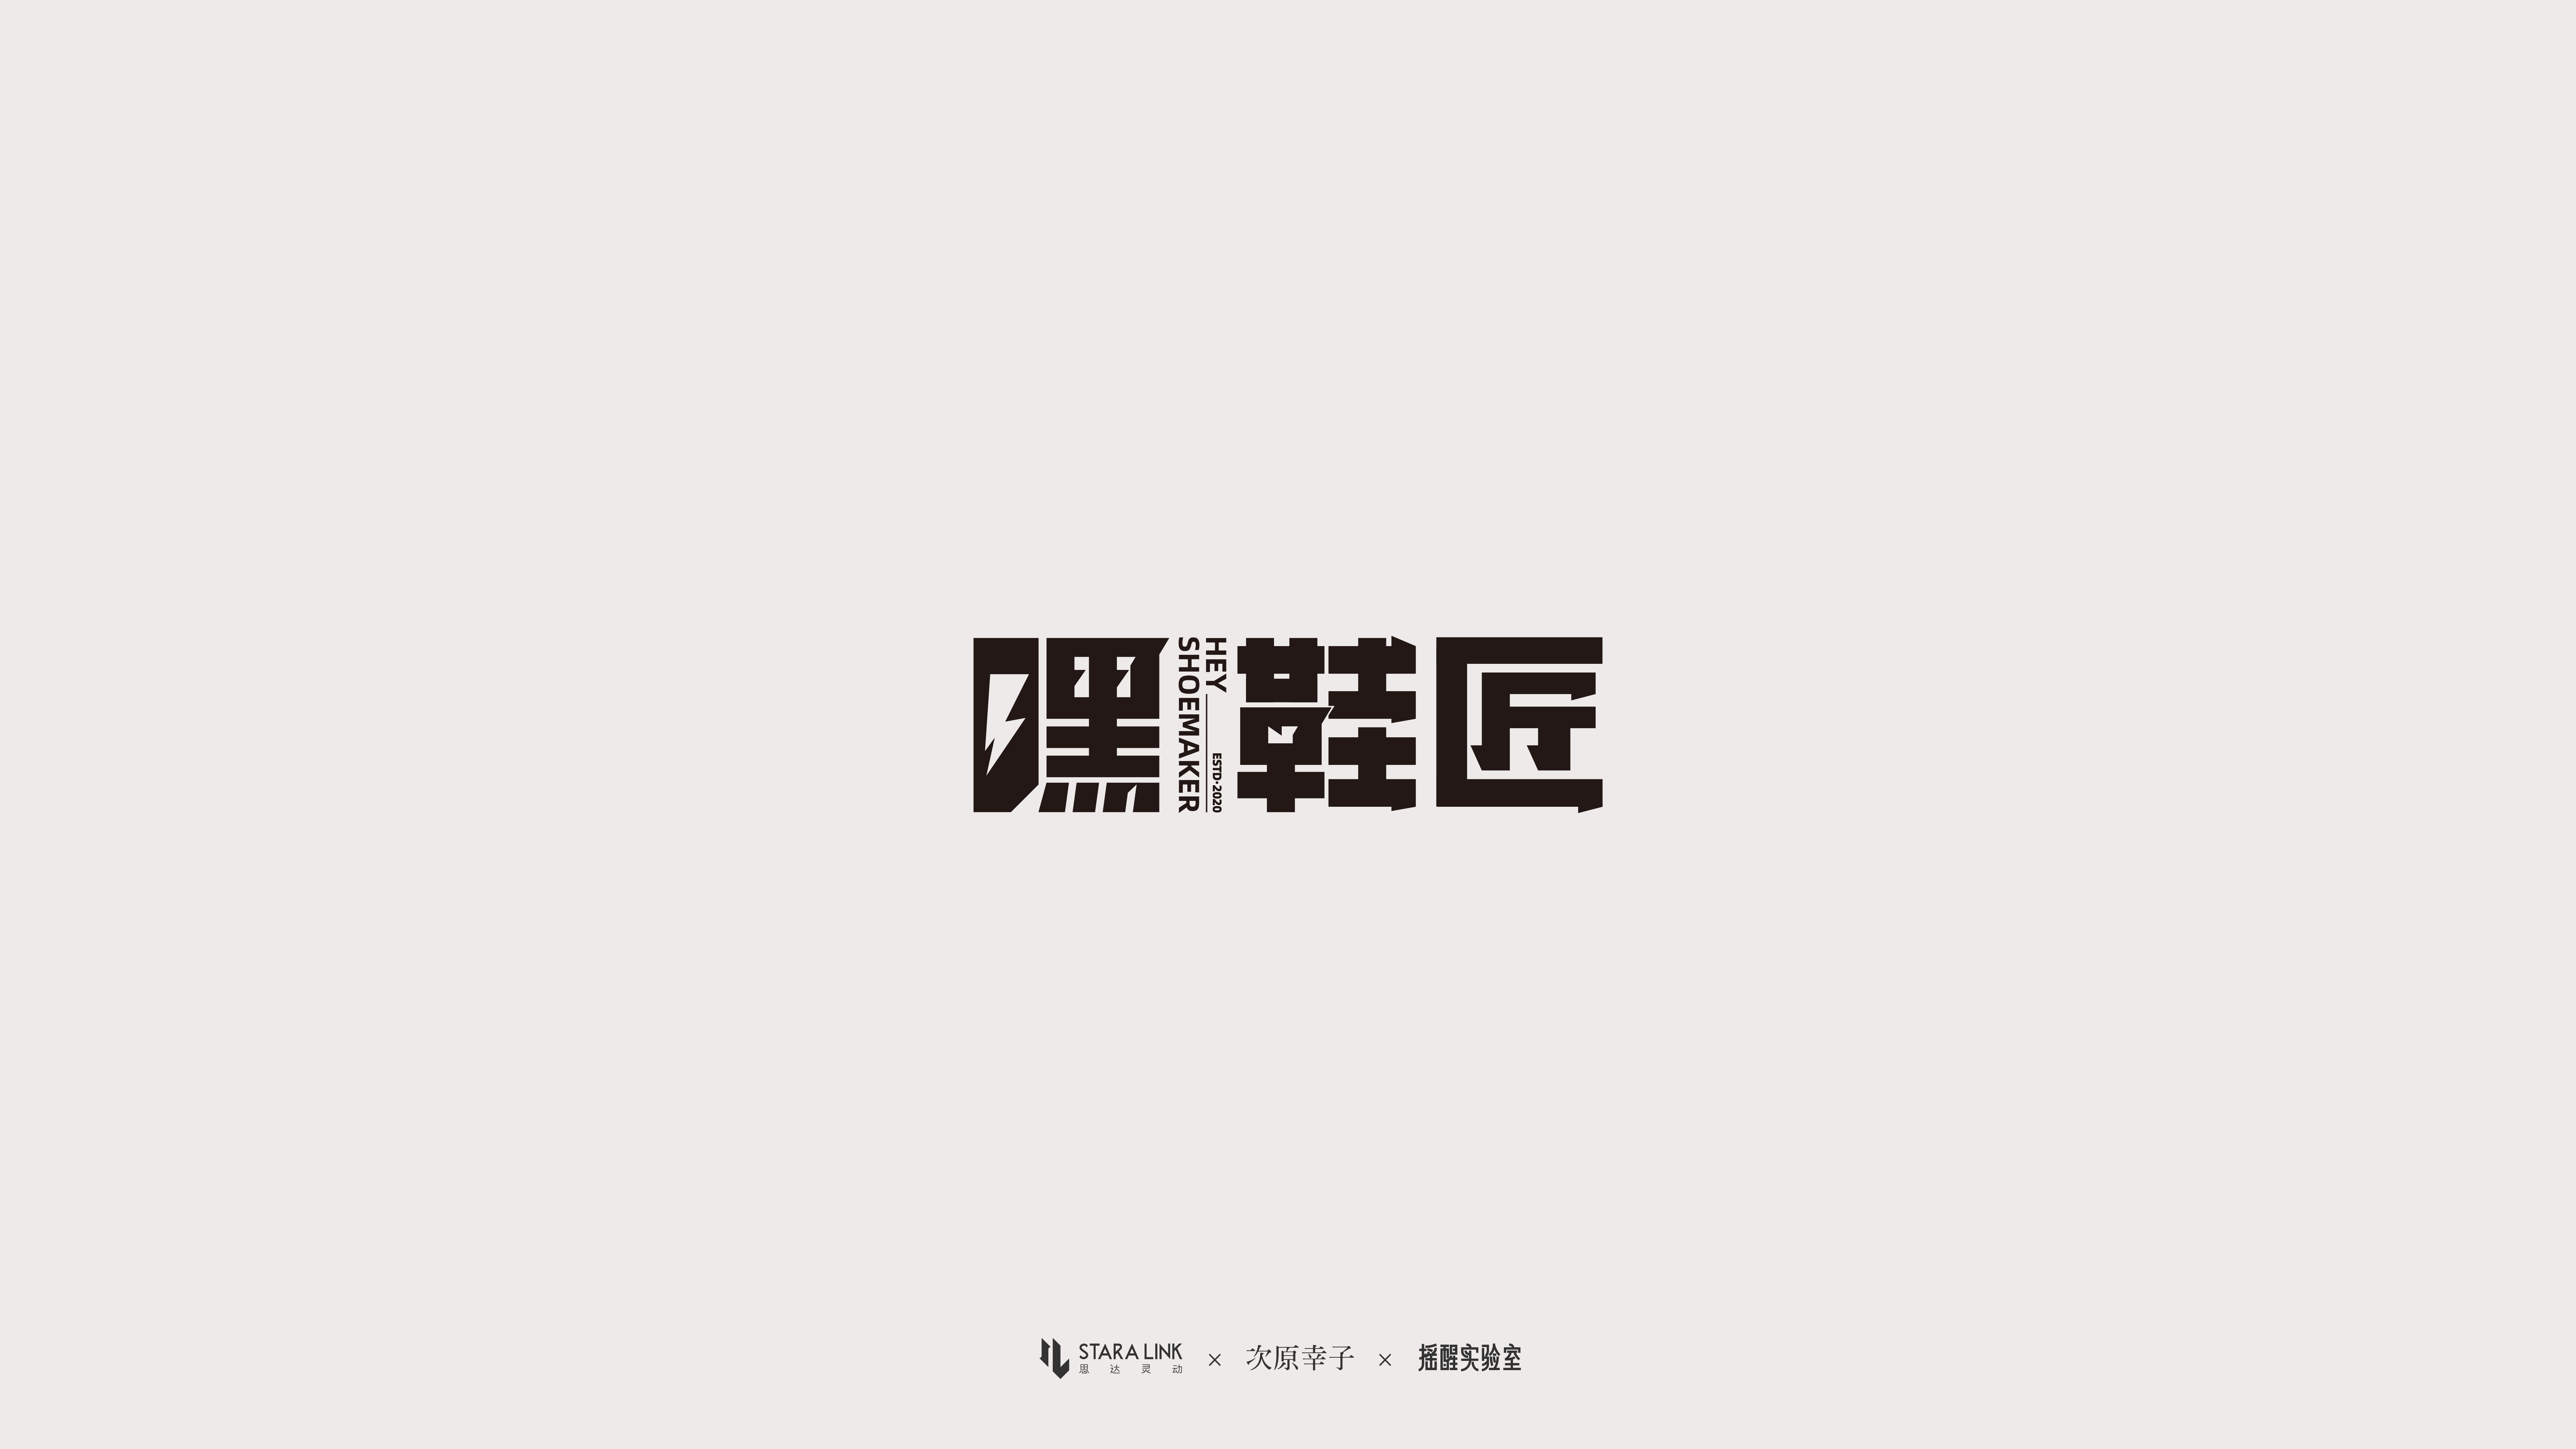 20P Collection of the latest Chinese font design schemes in 2021 #.266